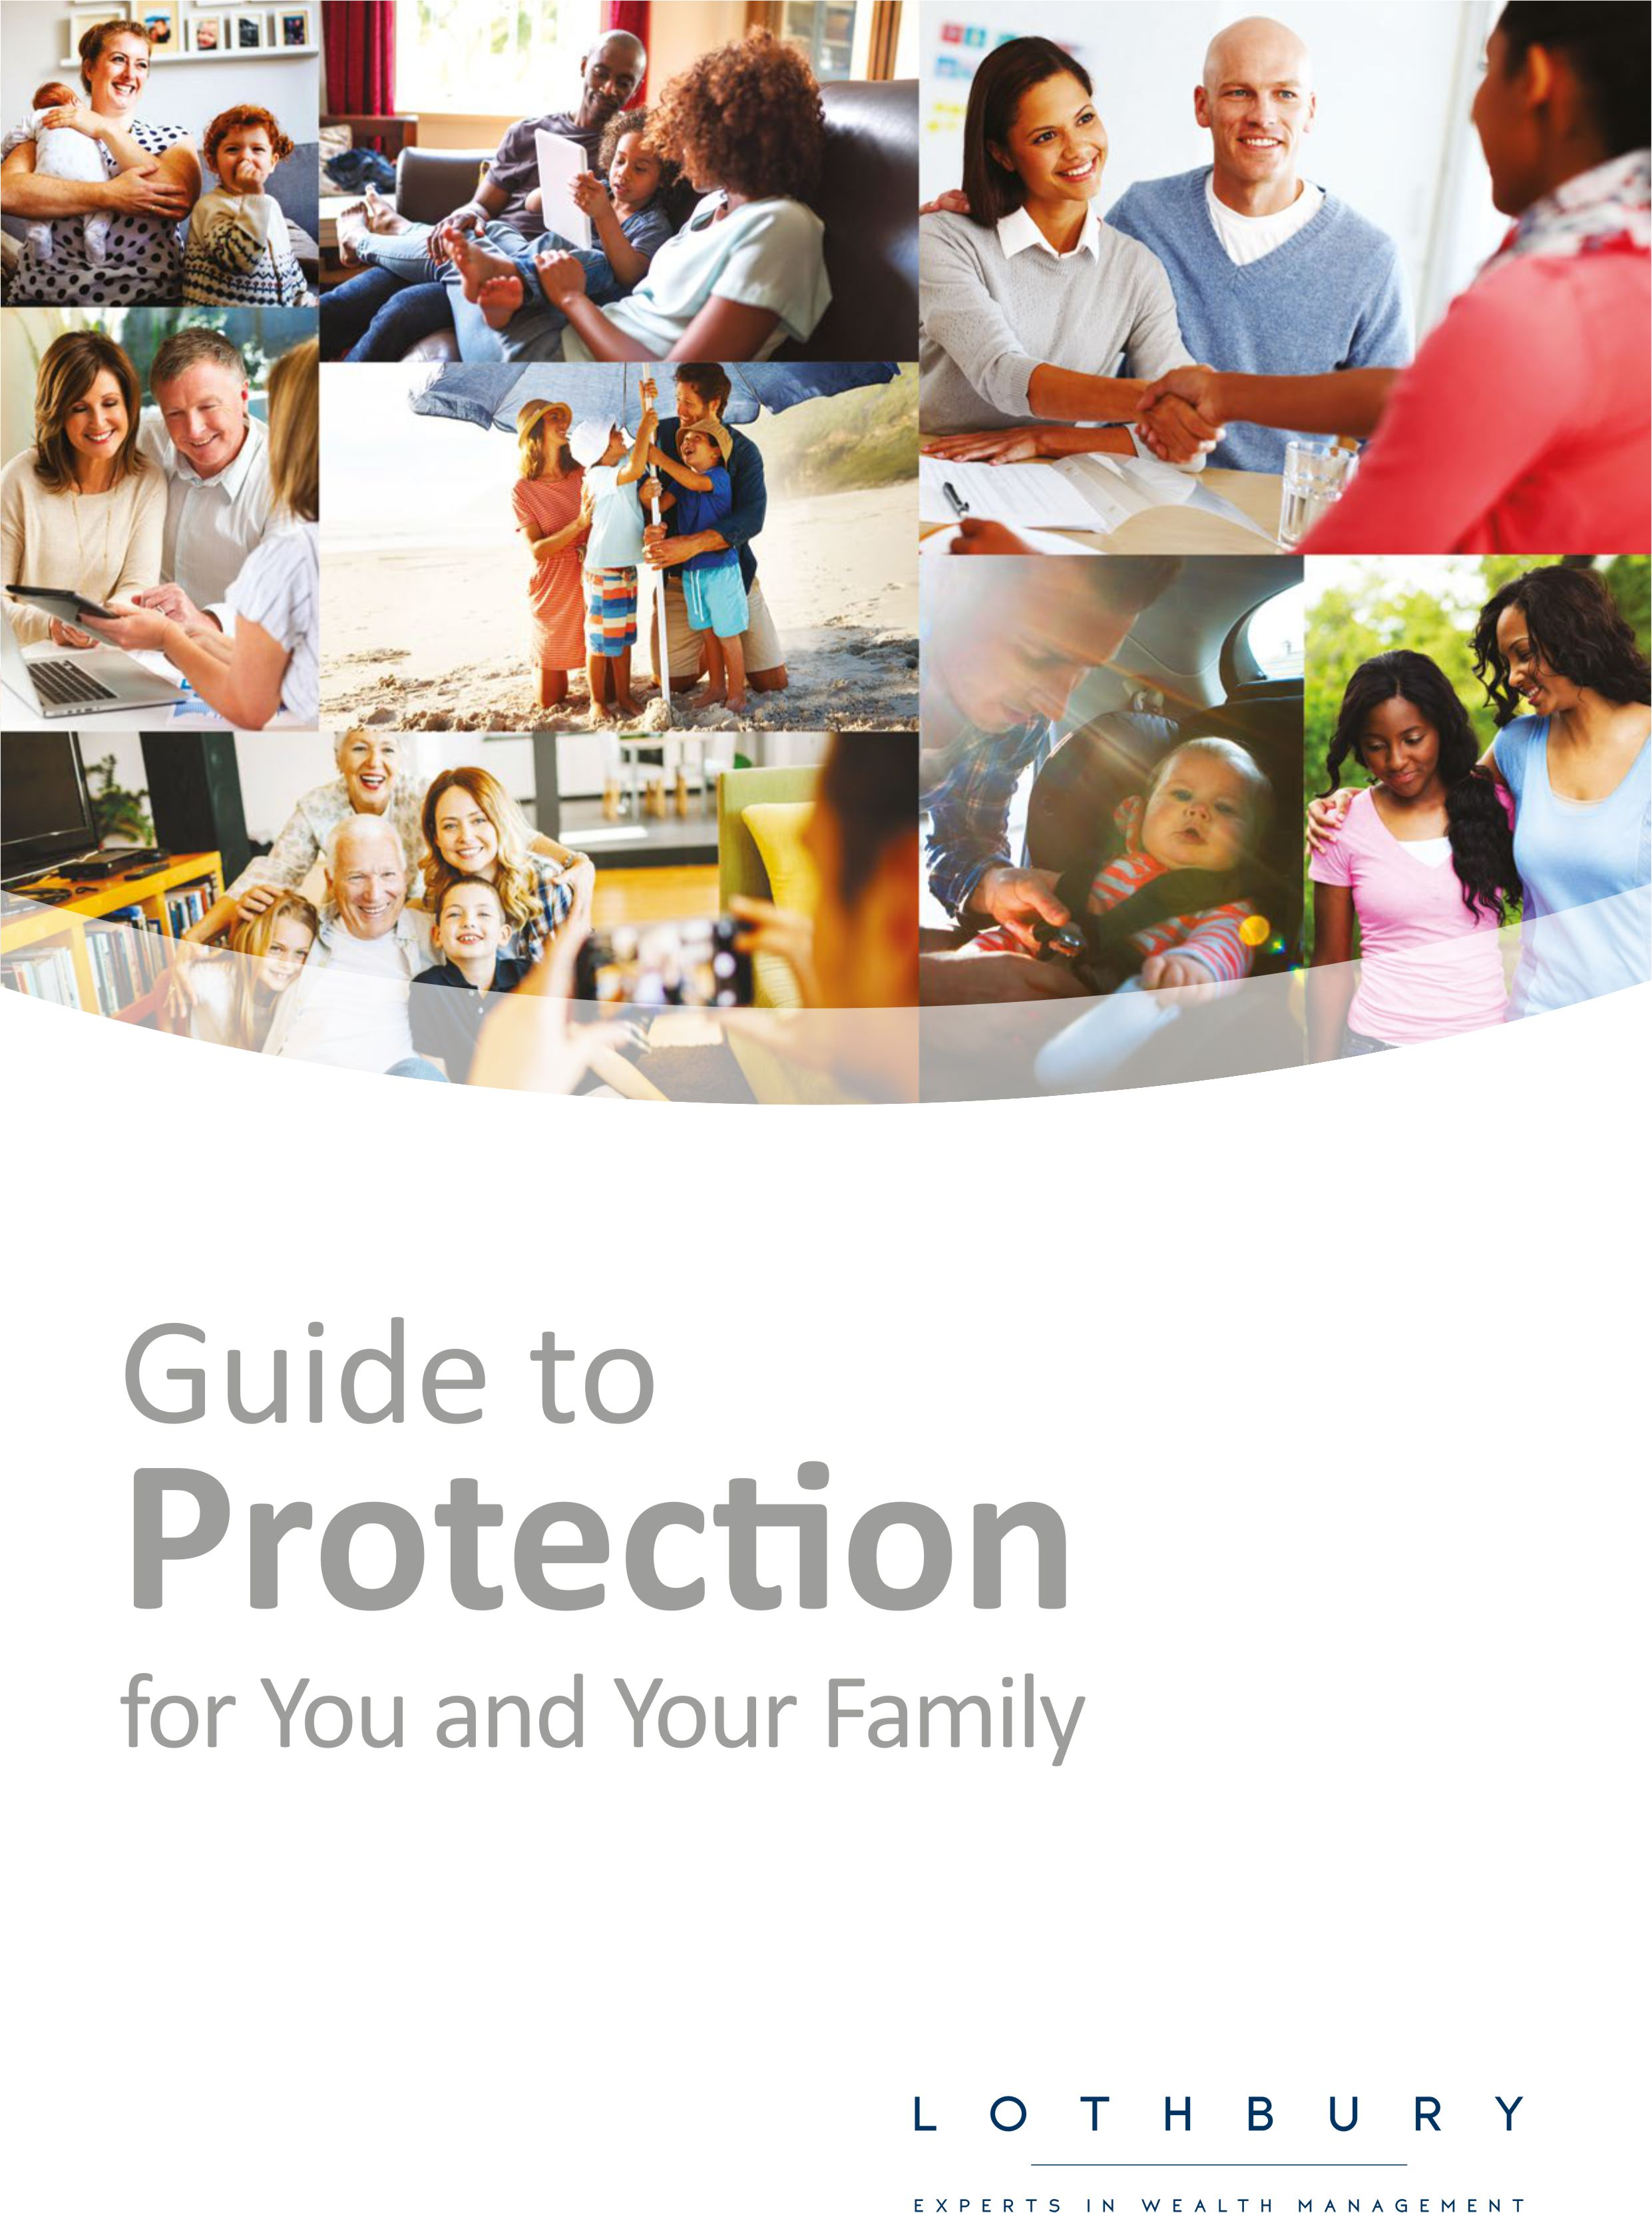 guide to protection  - Our easy to read guide to the different insurances that are available to provide protection against illness and death for you and your family